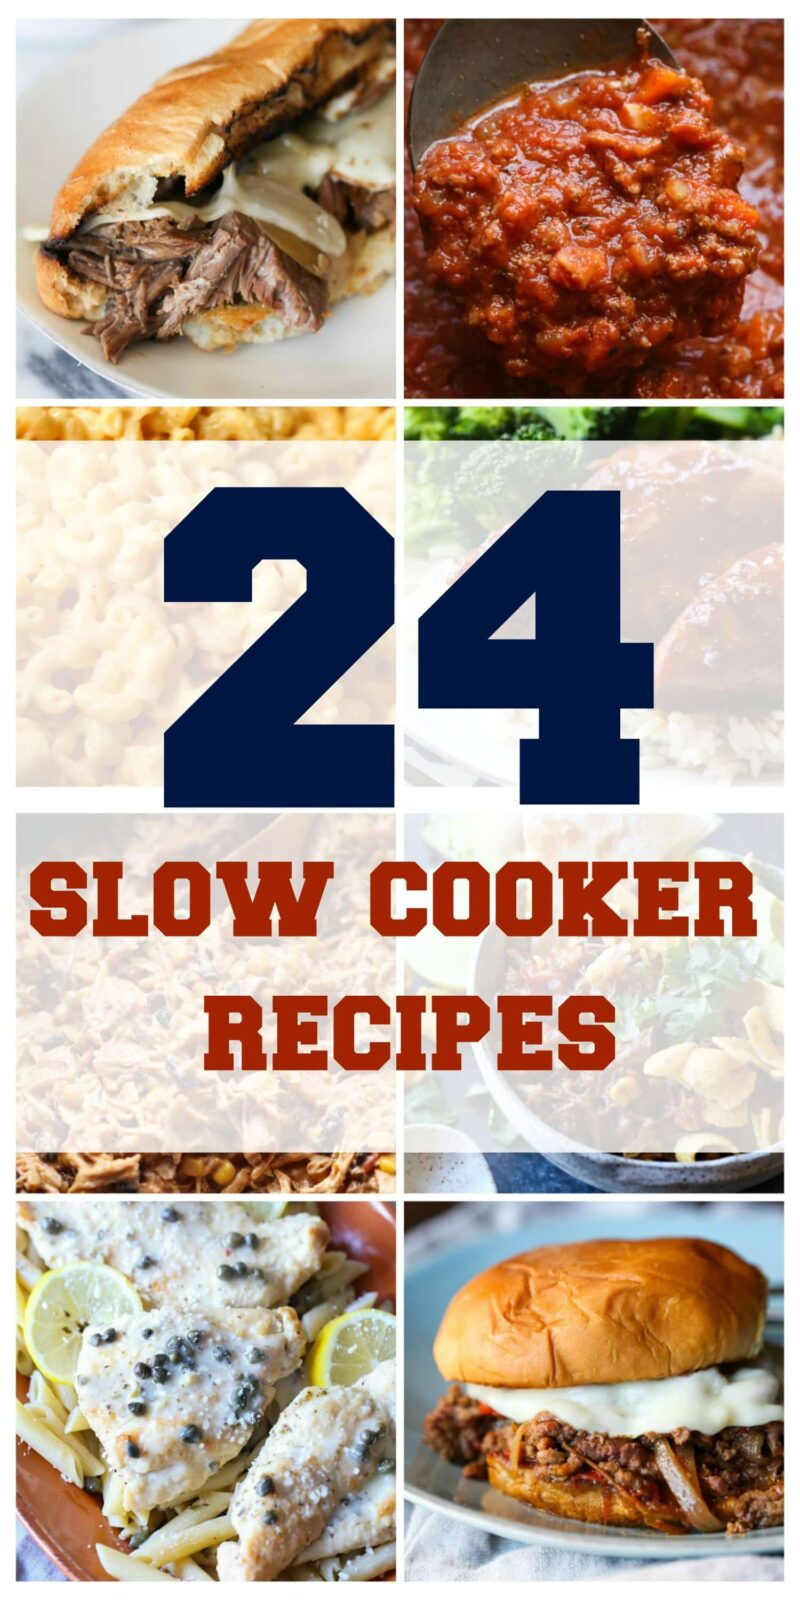 24 Slow Cooker Recipes that are easy and great slow cooker meals for weeknights